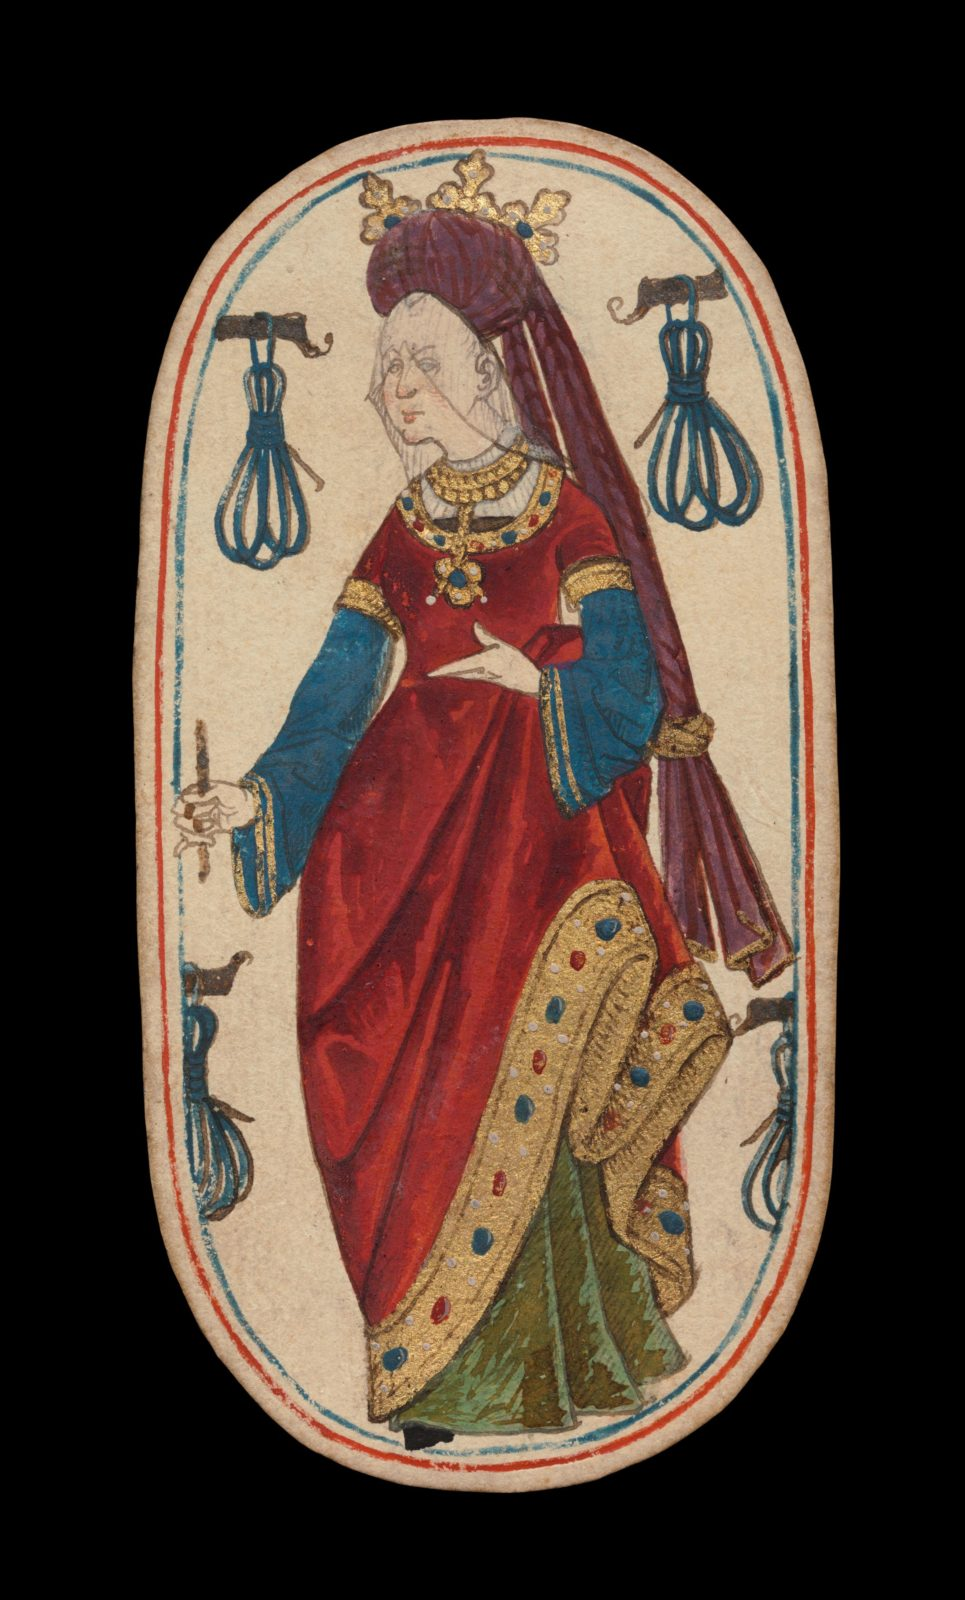 Queen of Tethers, from The Cloisters Playing Cards